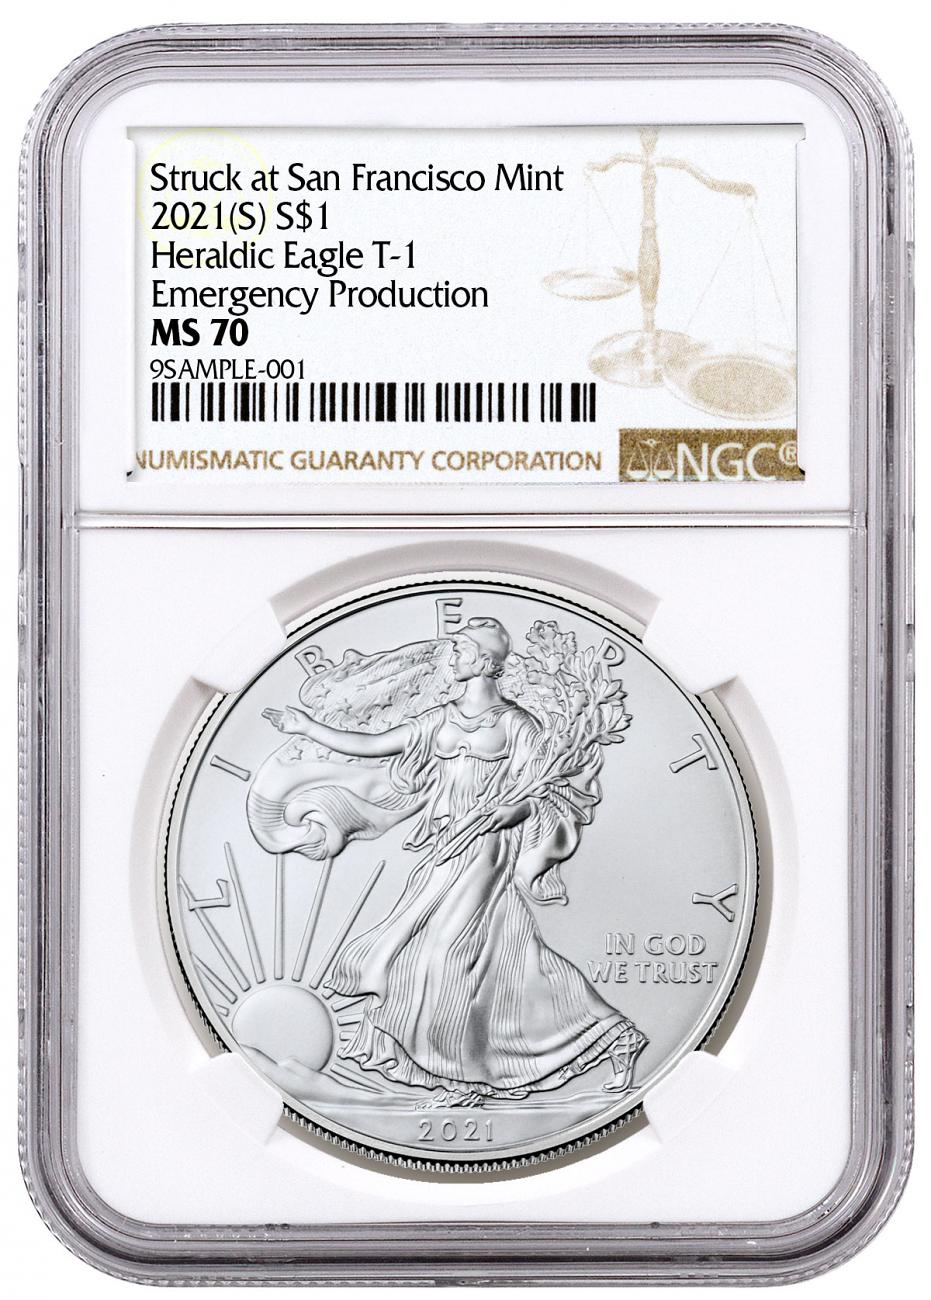 2021-(S) American Silver Eagle Emergency Production Struck at San Francisco Mint T-1 NGC MS70 Brown Label